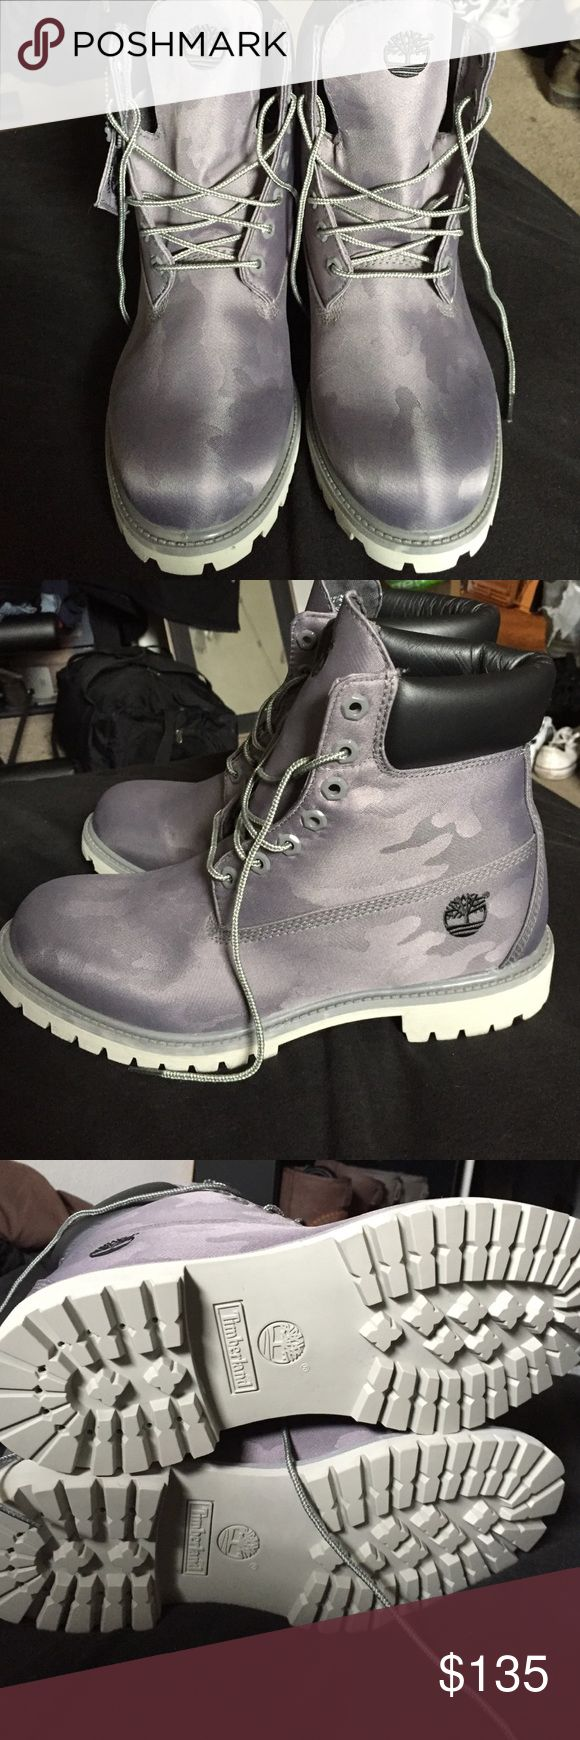 Brand new Men's Grey camo Timberland Boots size 11 Brand new. Limited Edition. Never been worn. Timberland Shoes Boots